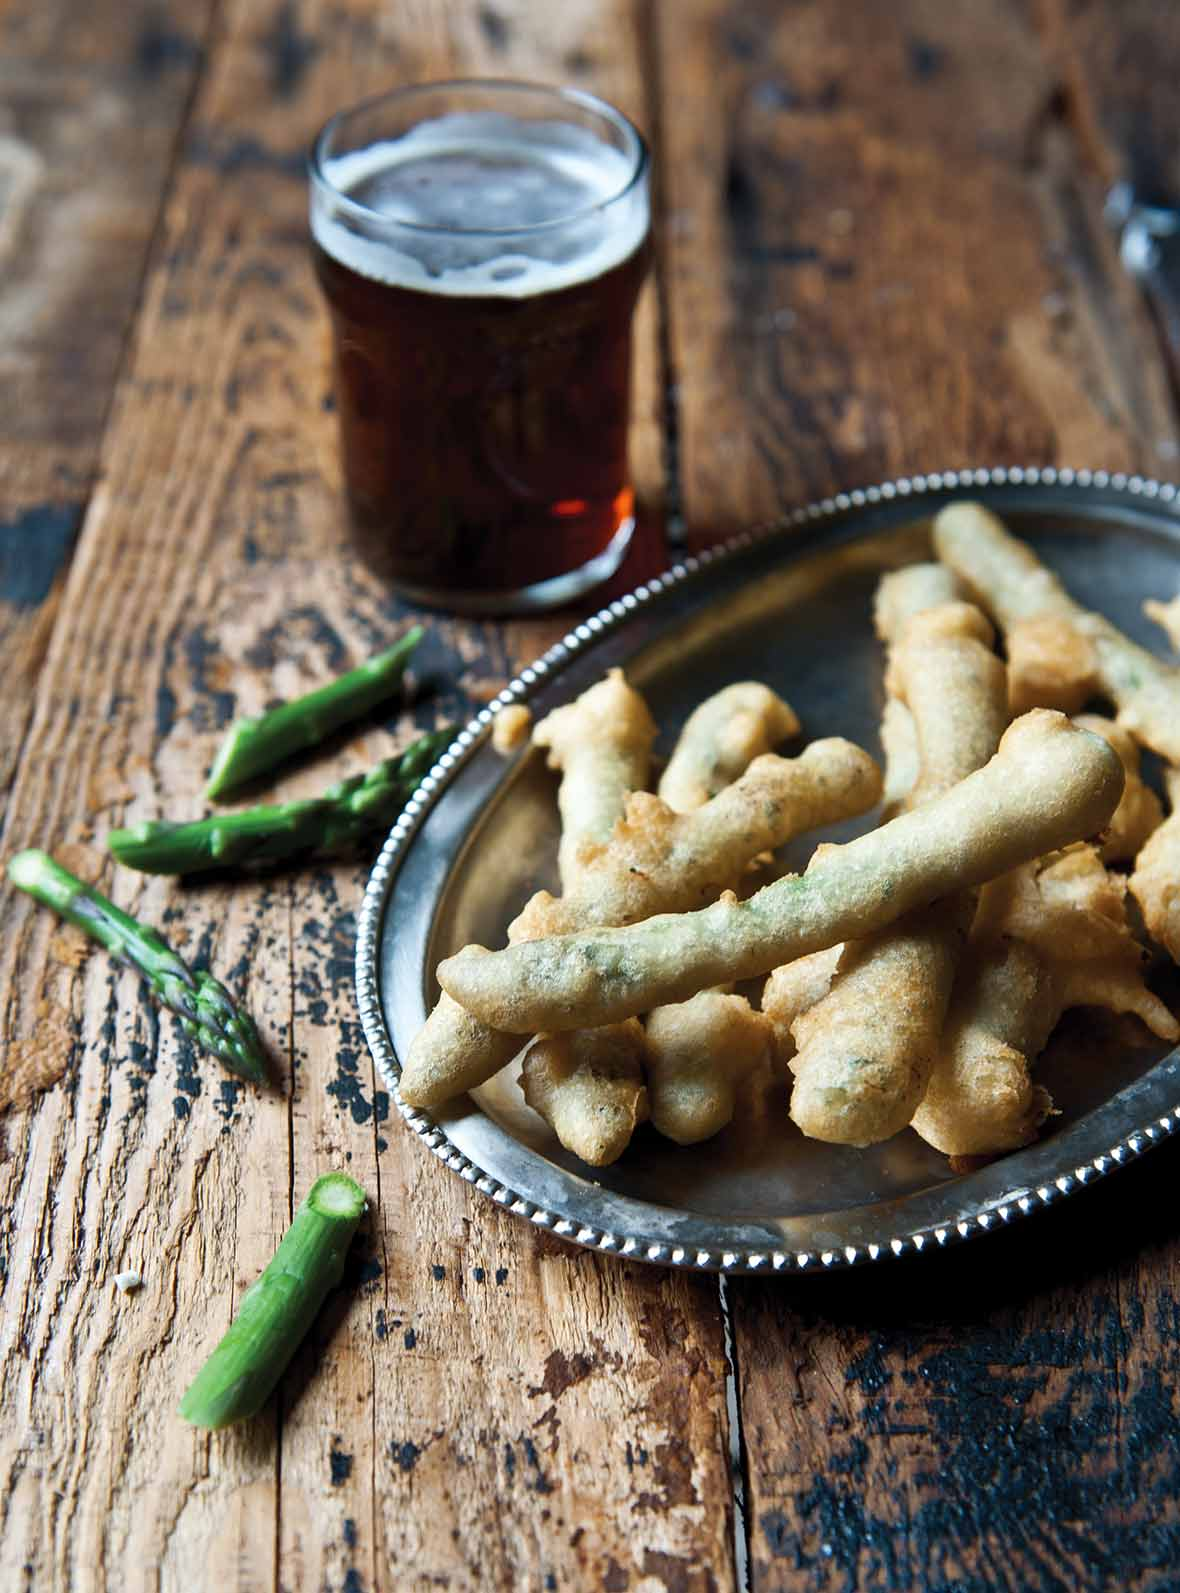 A silver platter filled with asparagus tempura with some pieces of asparagus and a glass of beer on a wooden table.